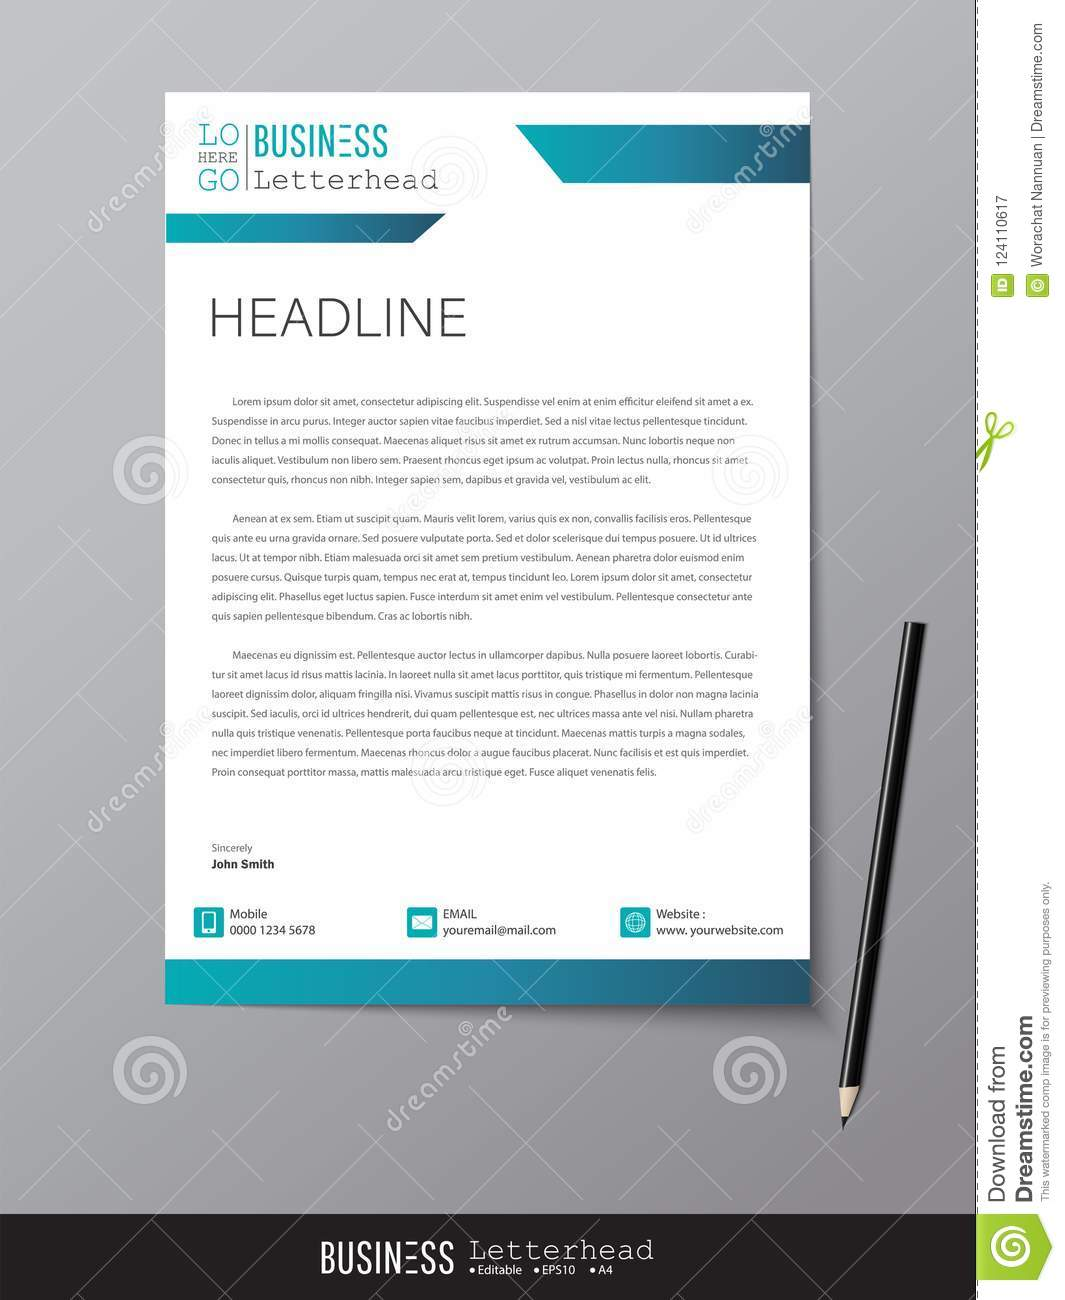 Letterhead Design Template And Mockup Minimalist Style Vector D Stock Vector Illustration Of Design Connection 124110617